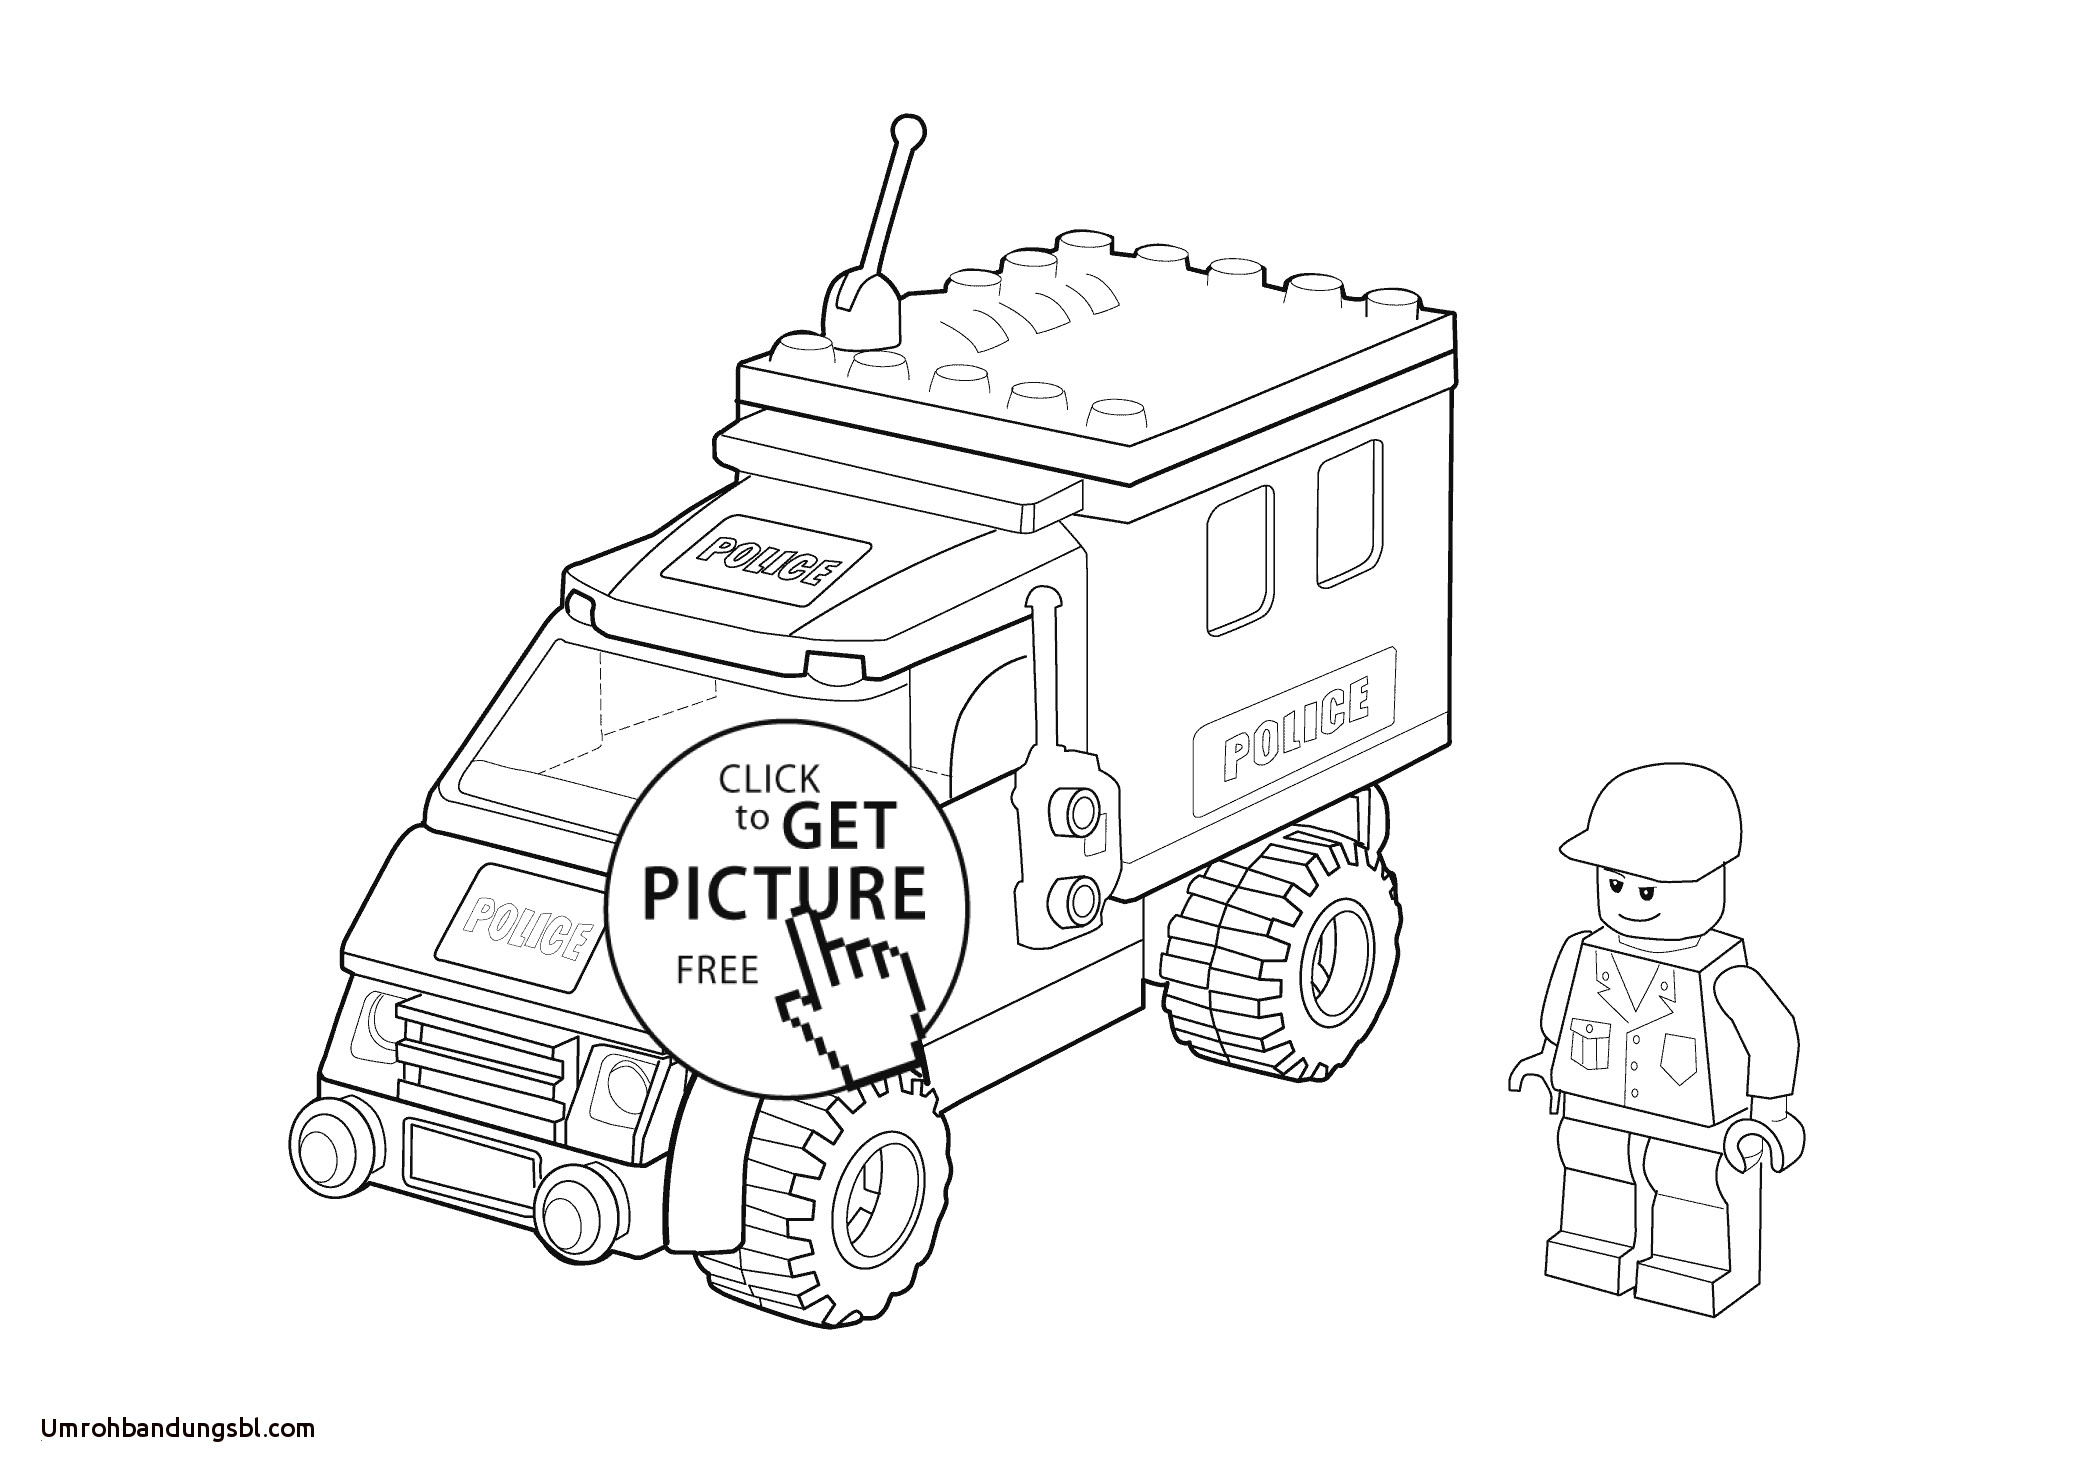 Lego City Coloring Pages  to Print 15e - Free Download